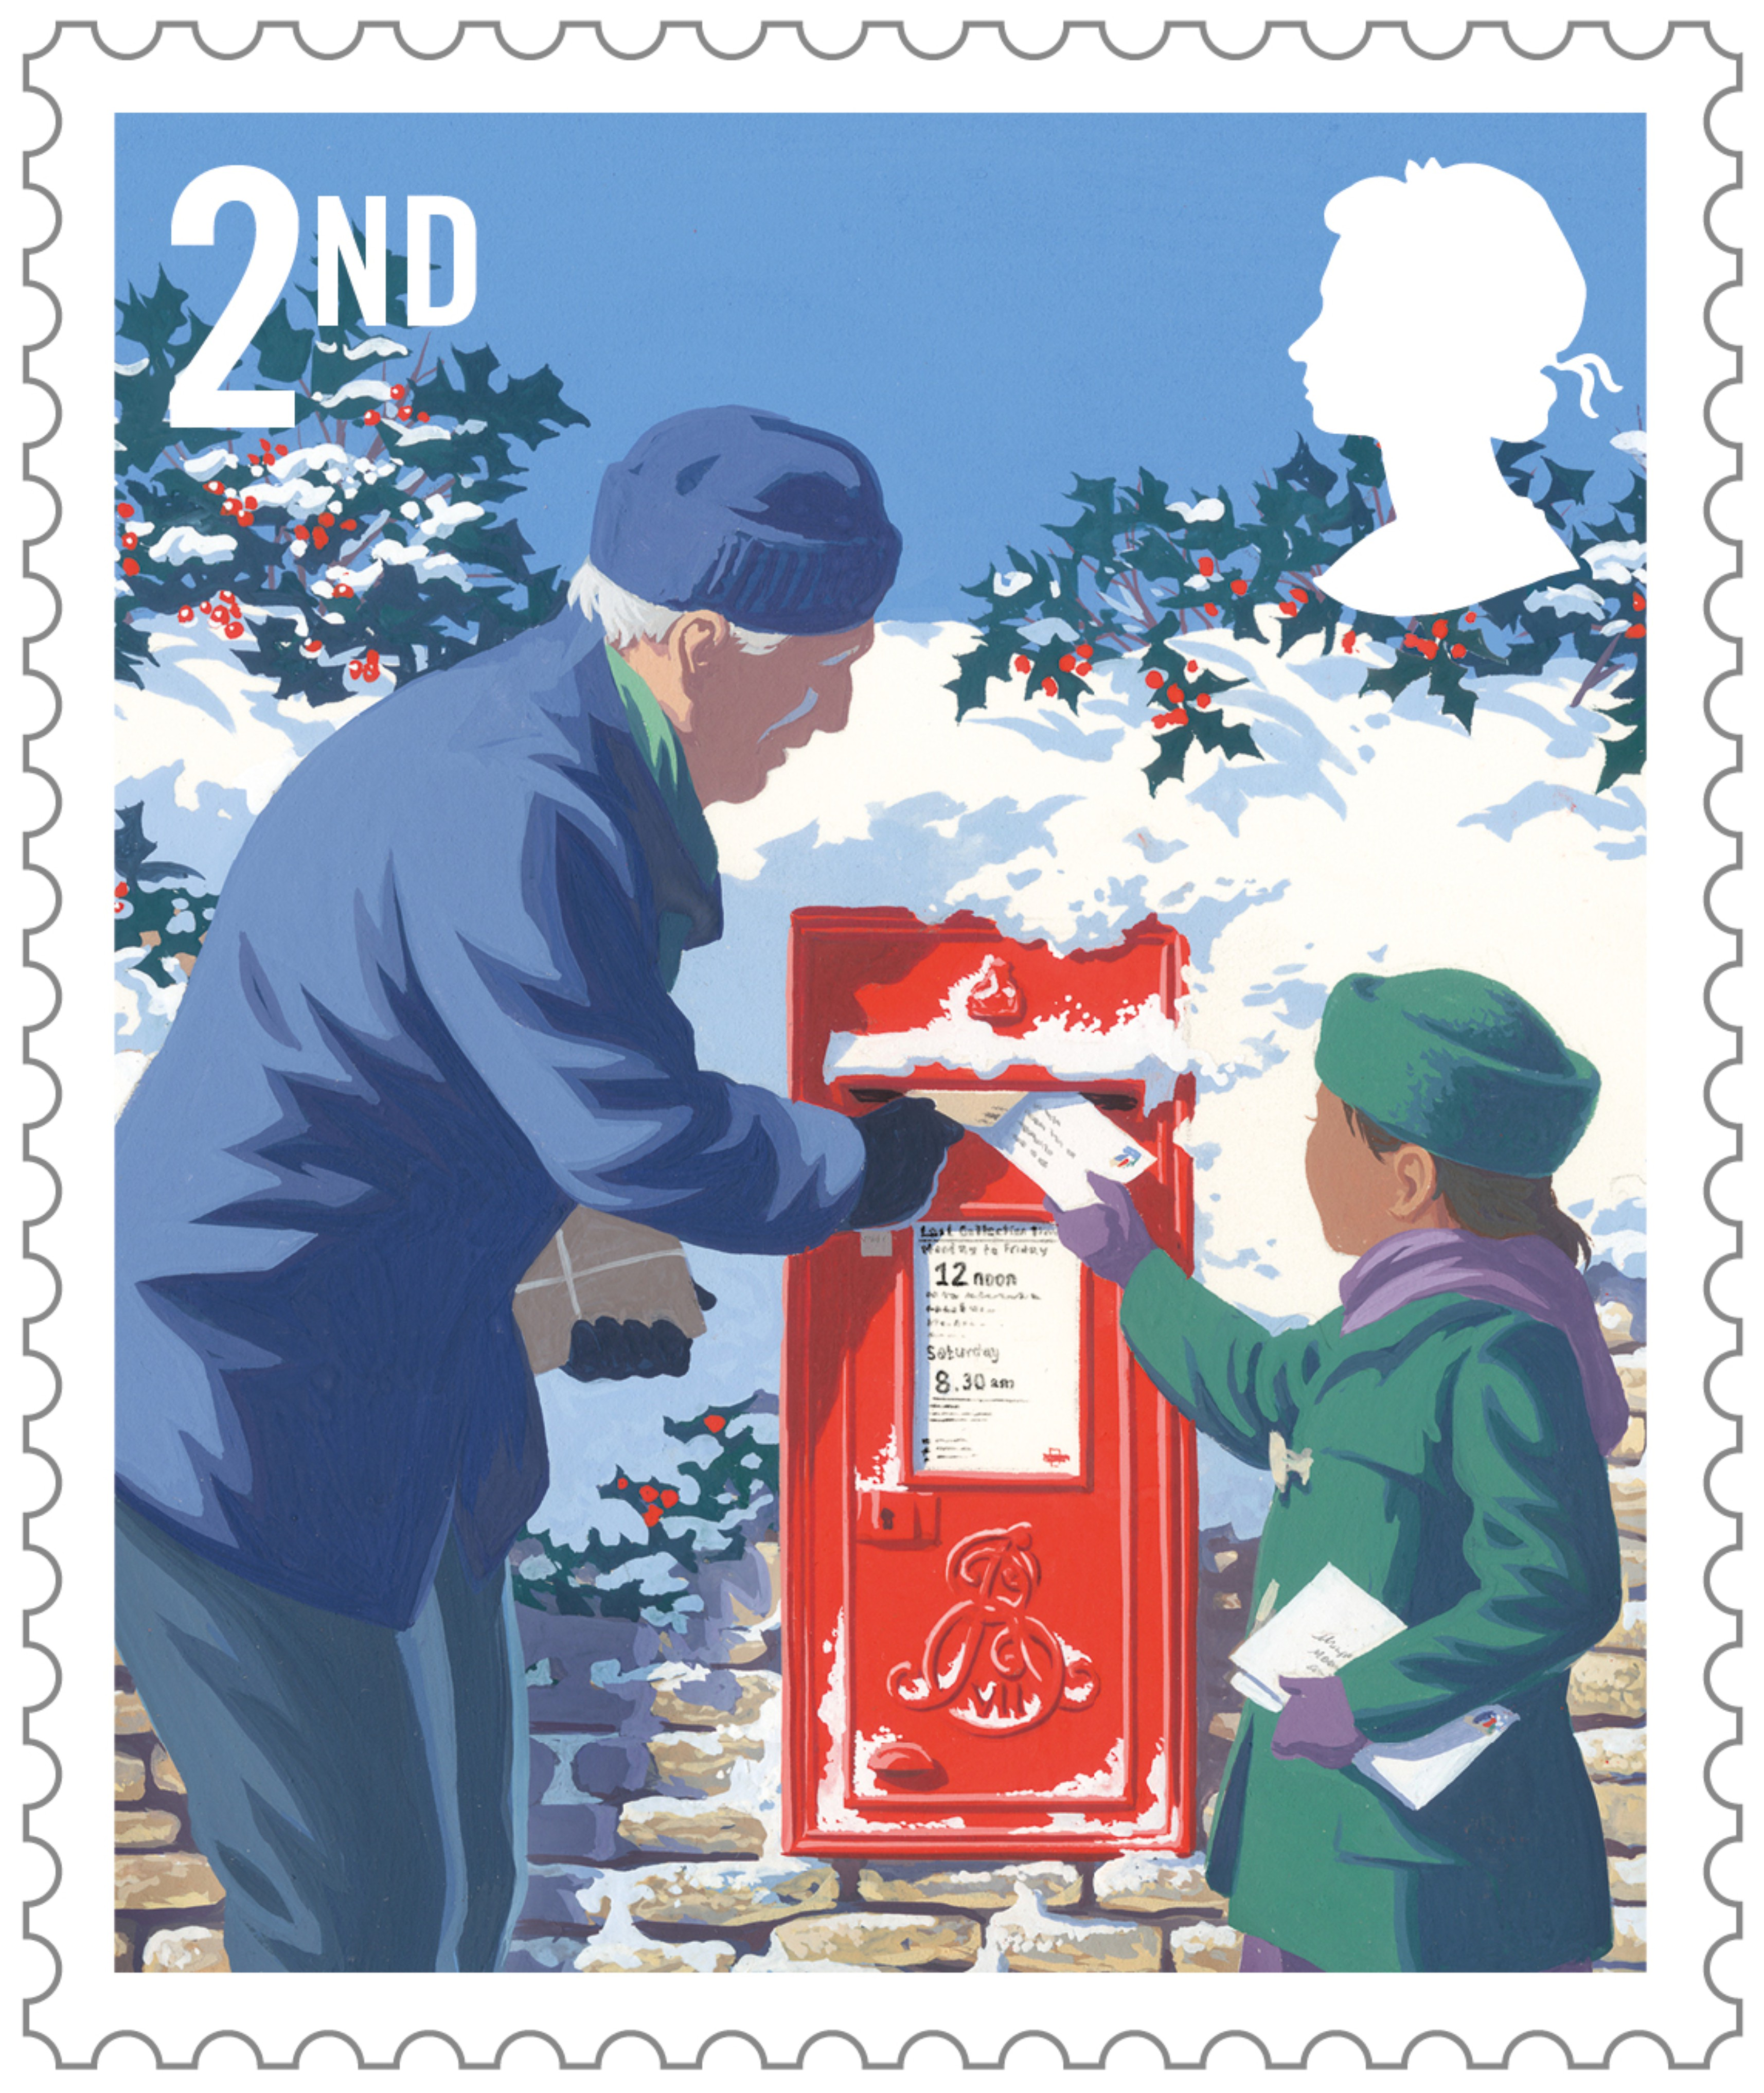 Christmas Stamps 2020 In Mail Royal Mail Christmas Stamps 2020 | Nrkmpy.newyearclubs2020.info